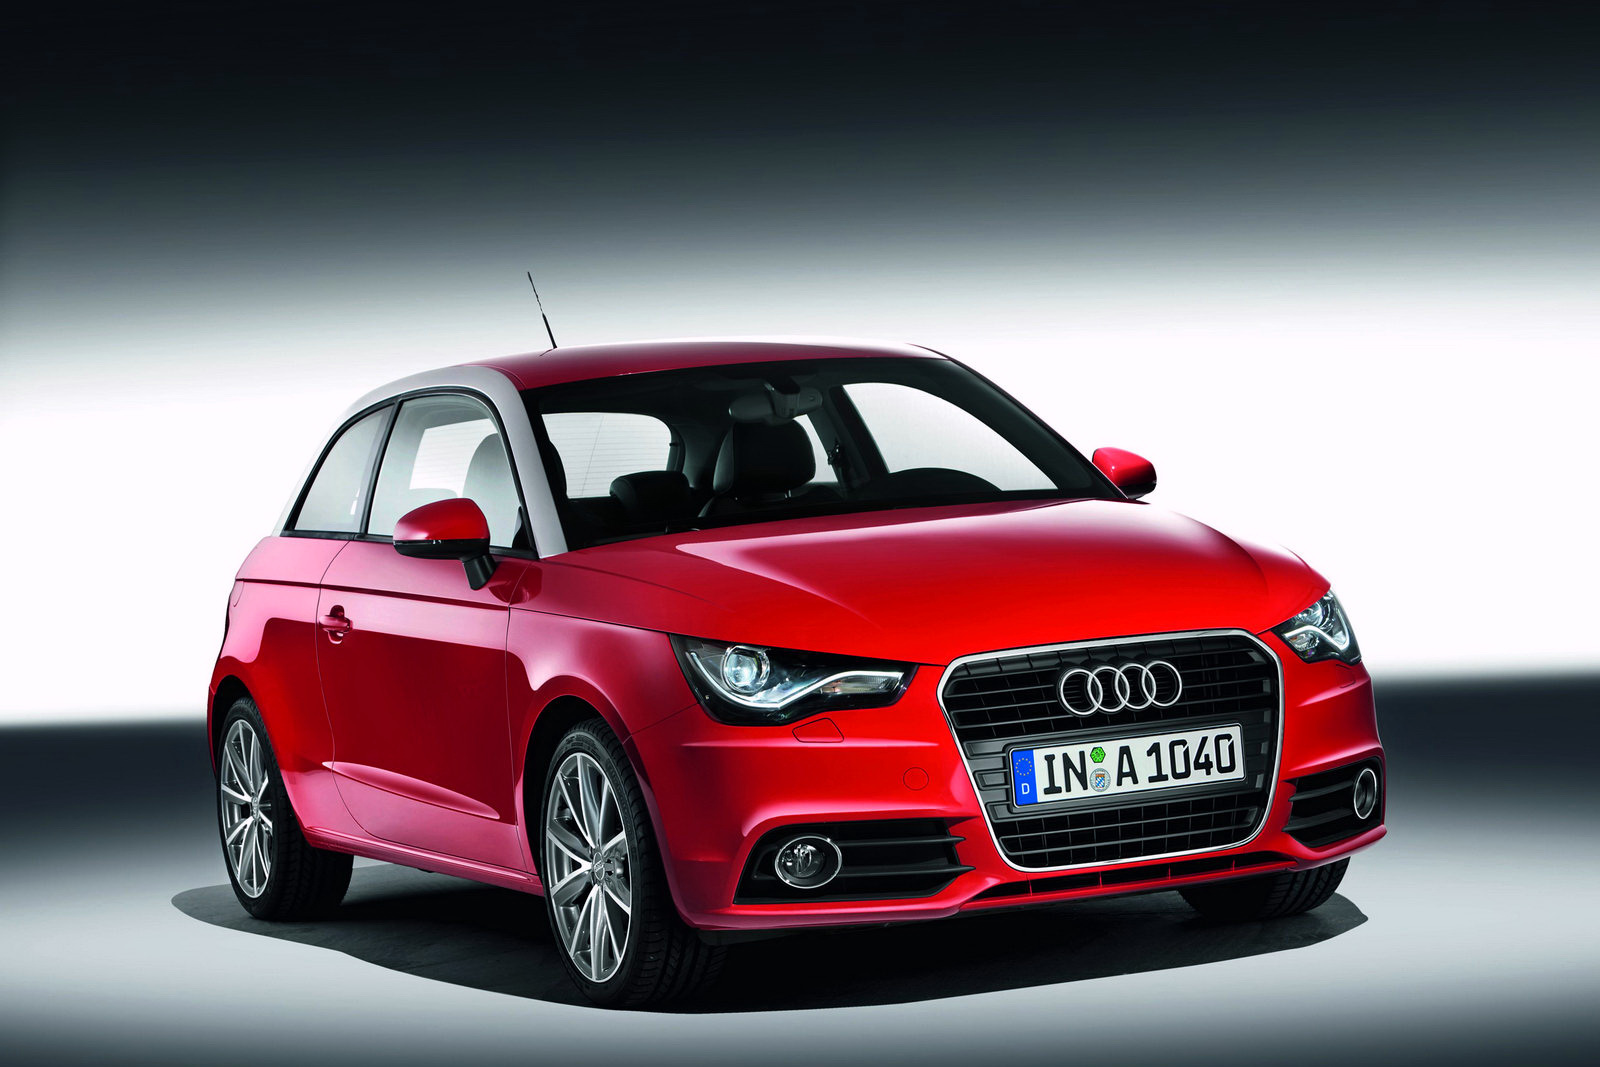 2010 Audi A1 Hatchback 3-door